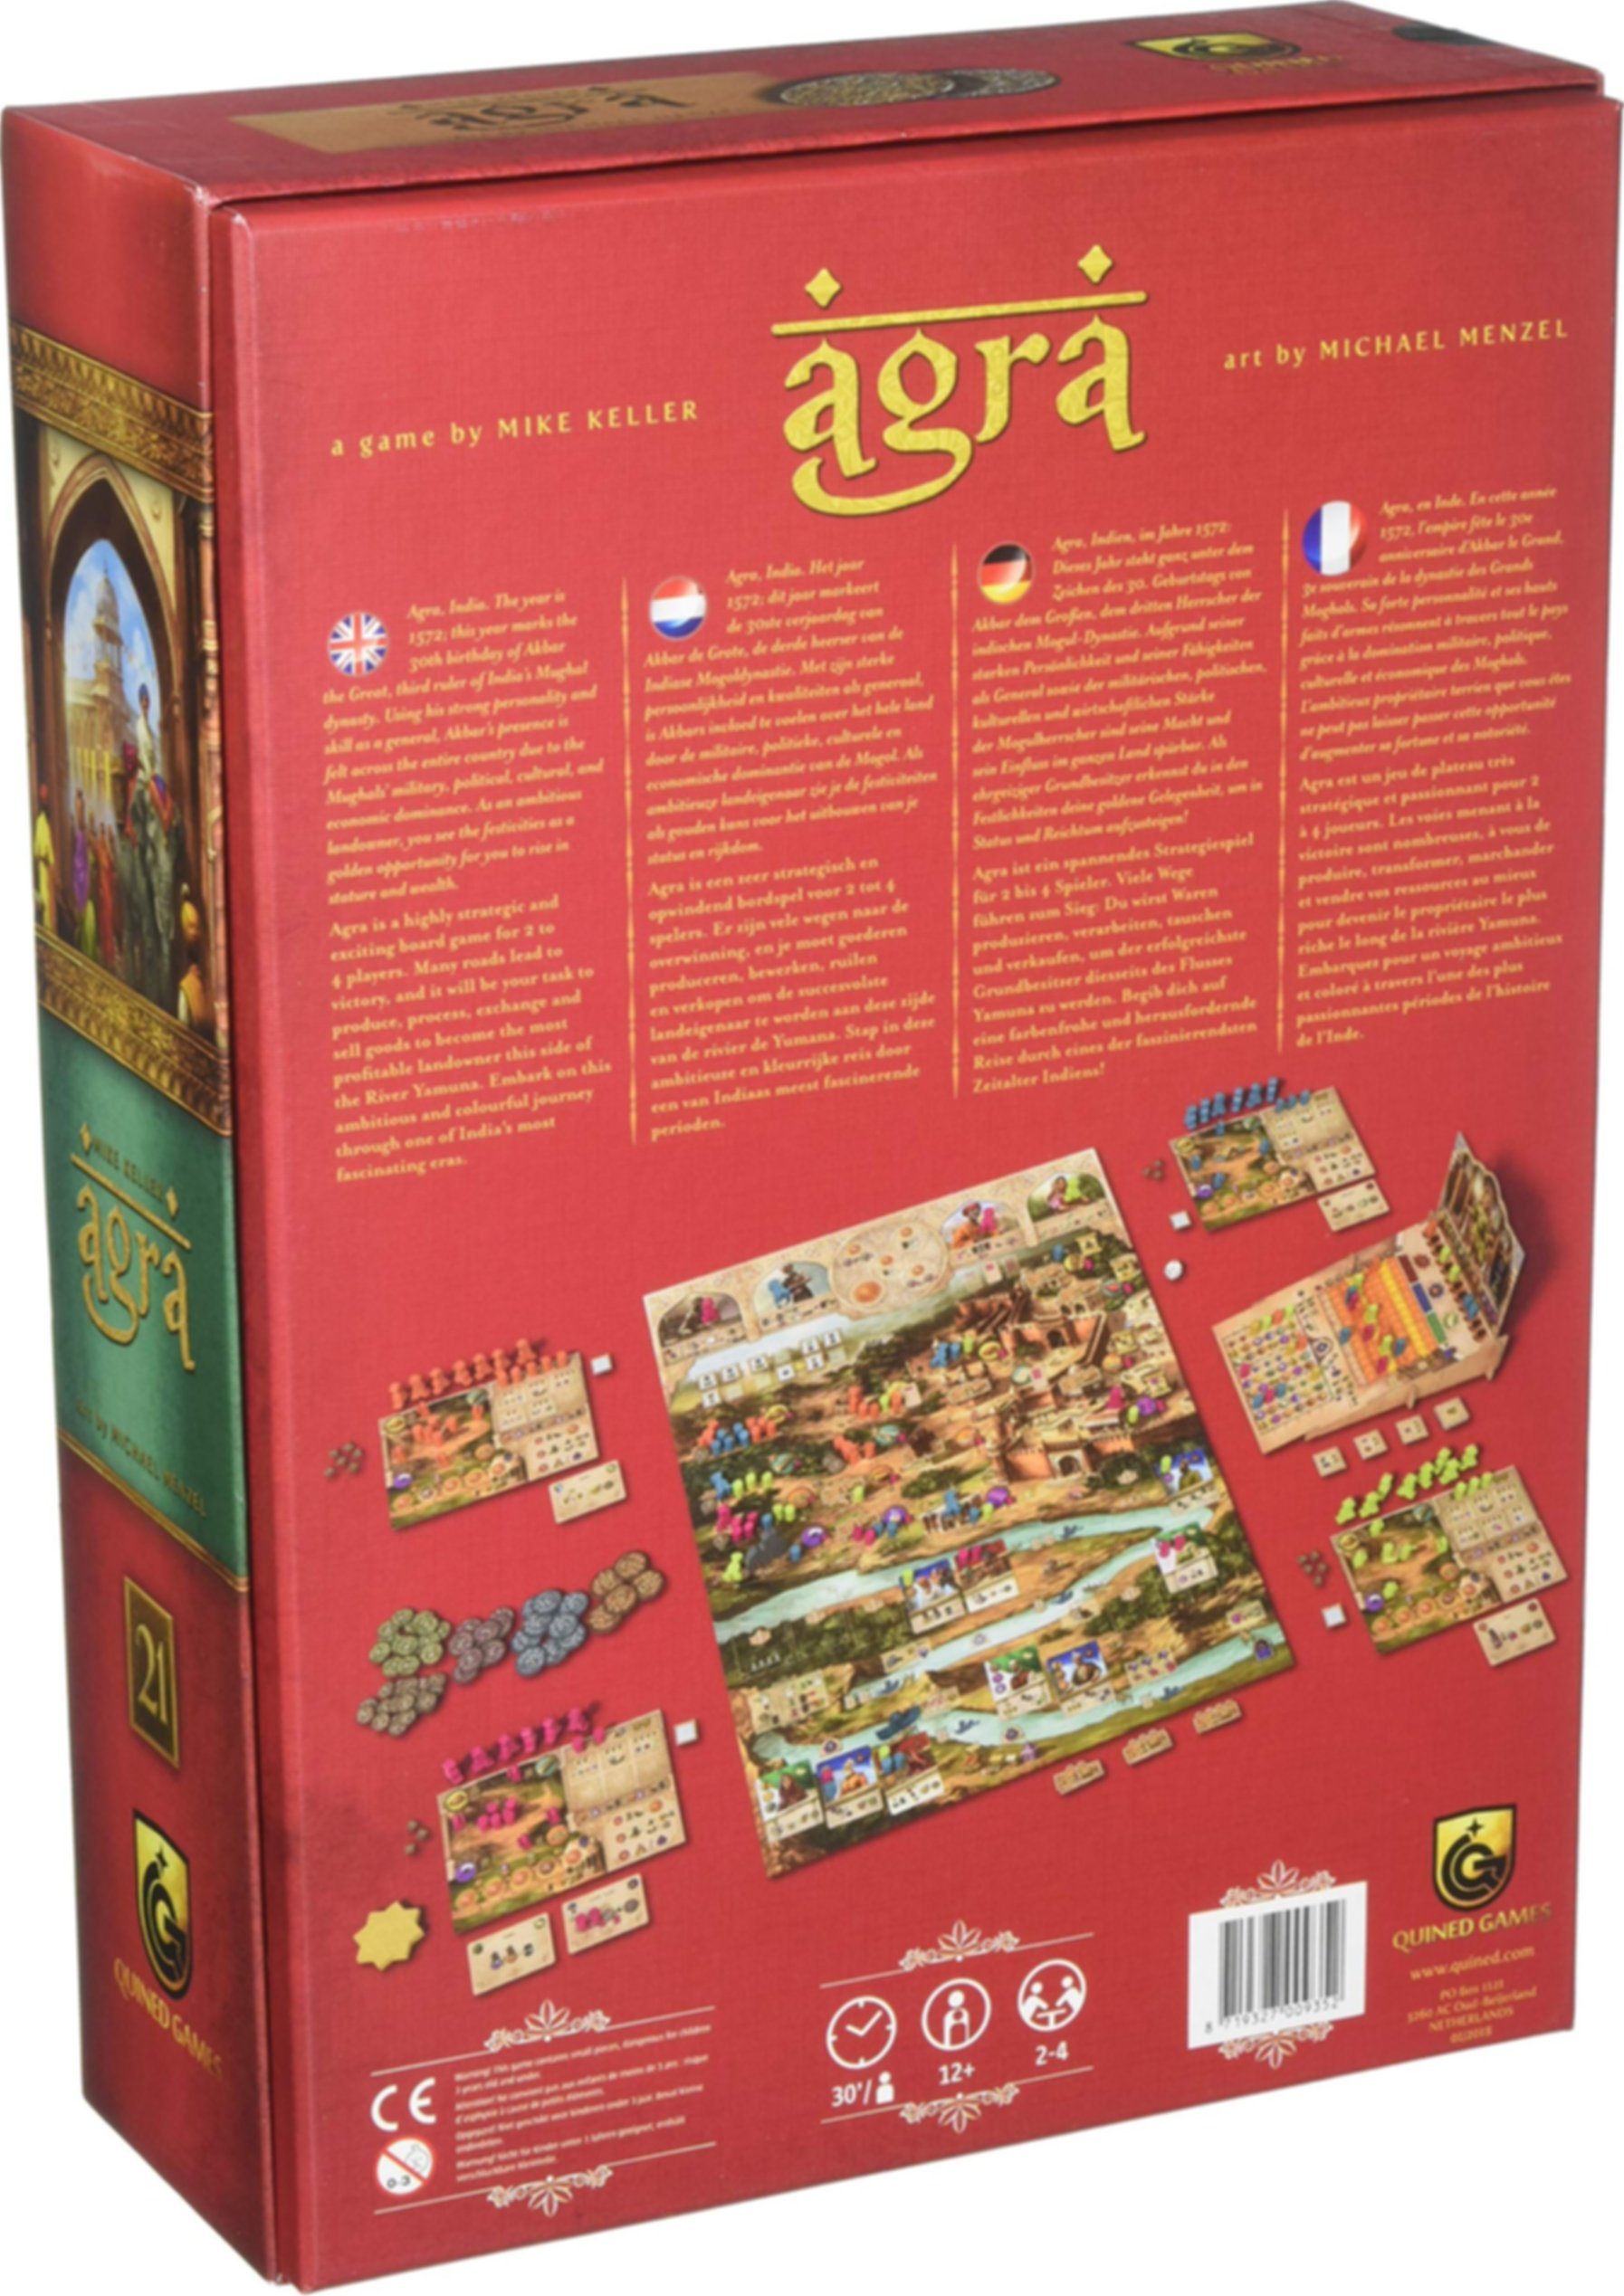 Agra back of the box